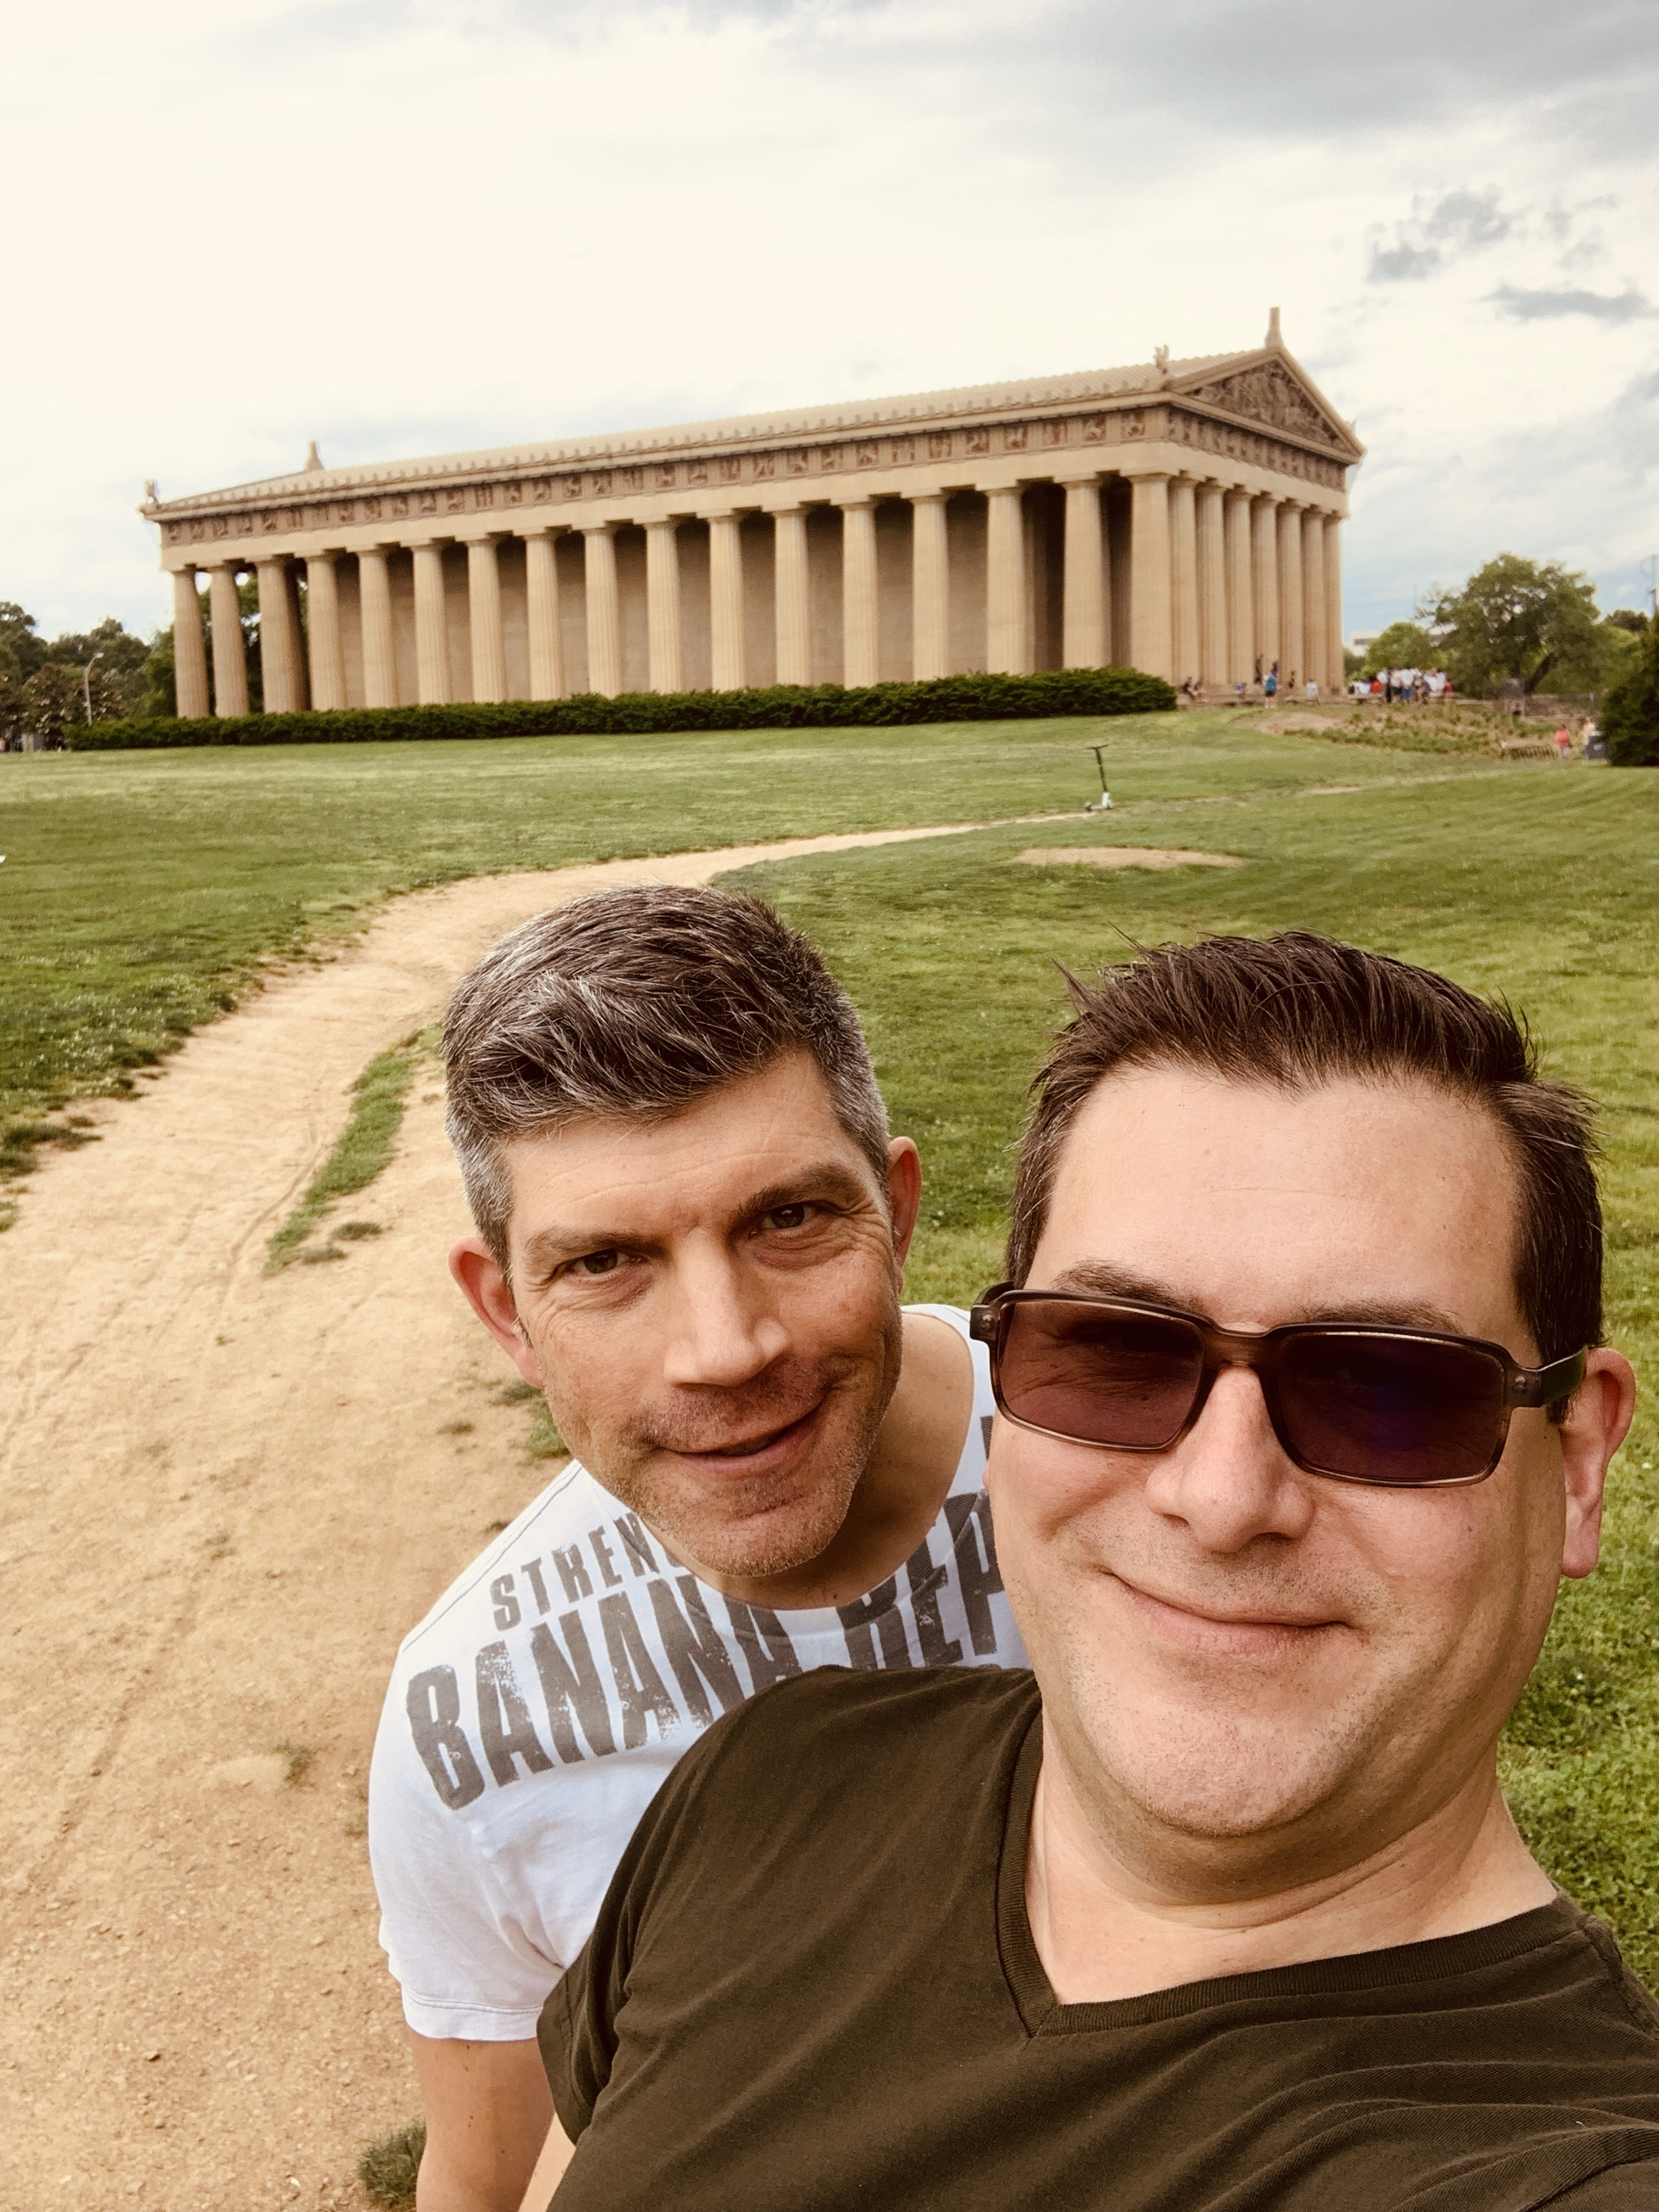 Nope, not Athens. It is Nashville's exact replica of the Parthenon!